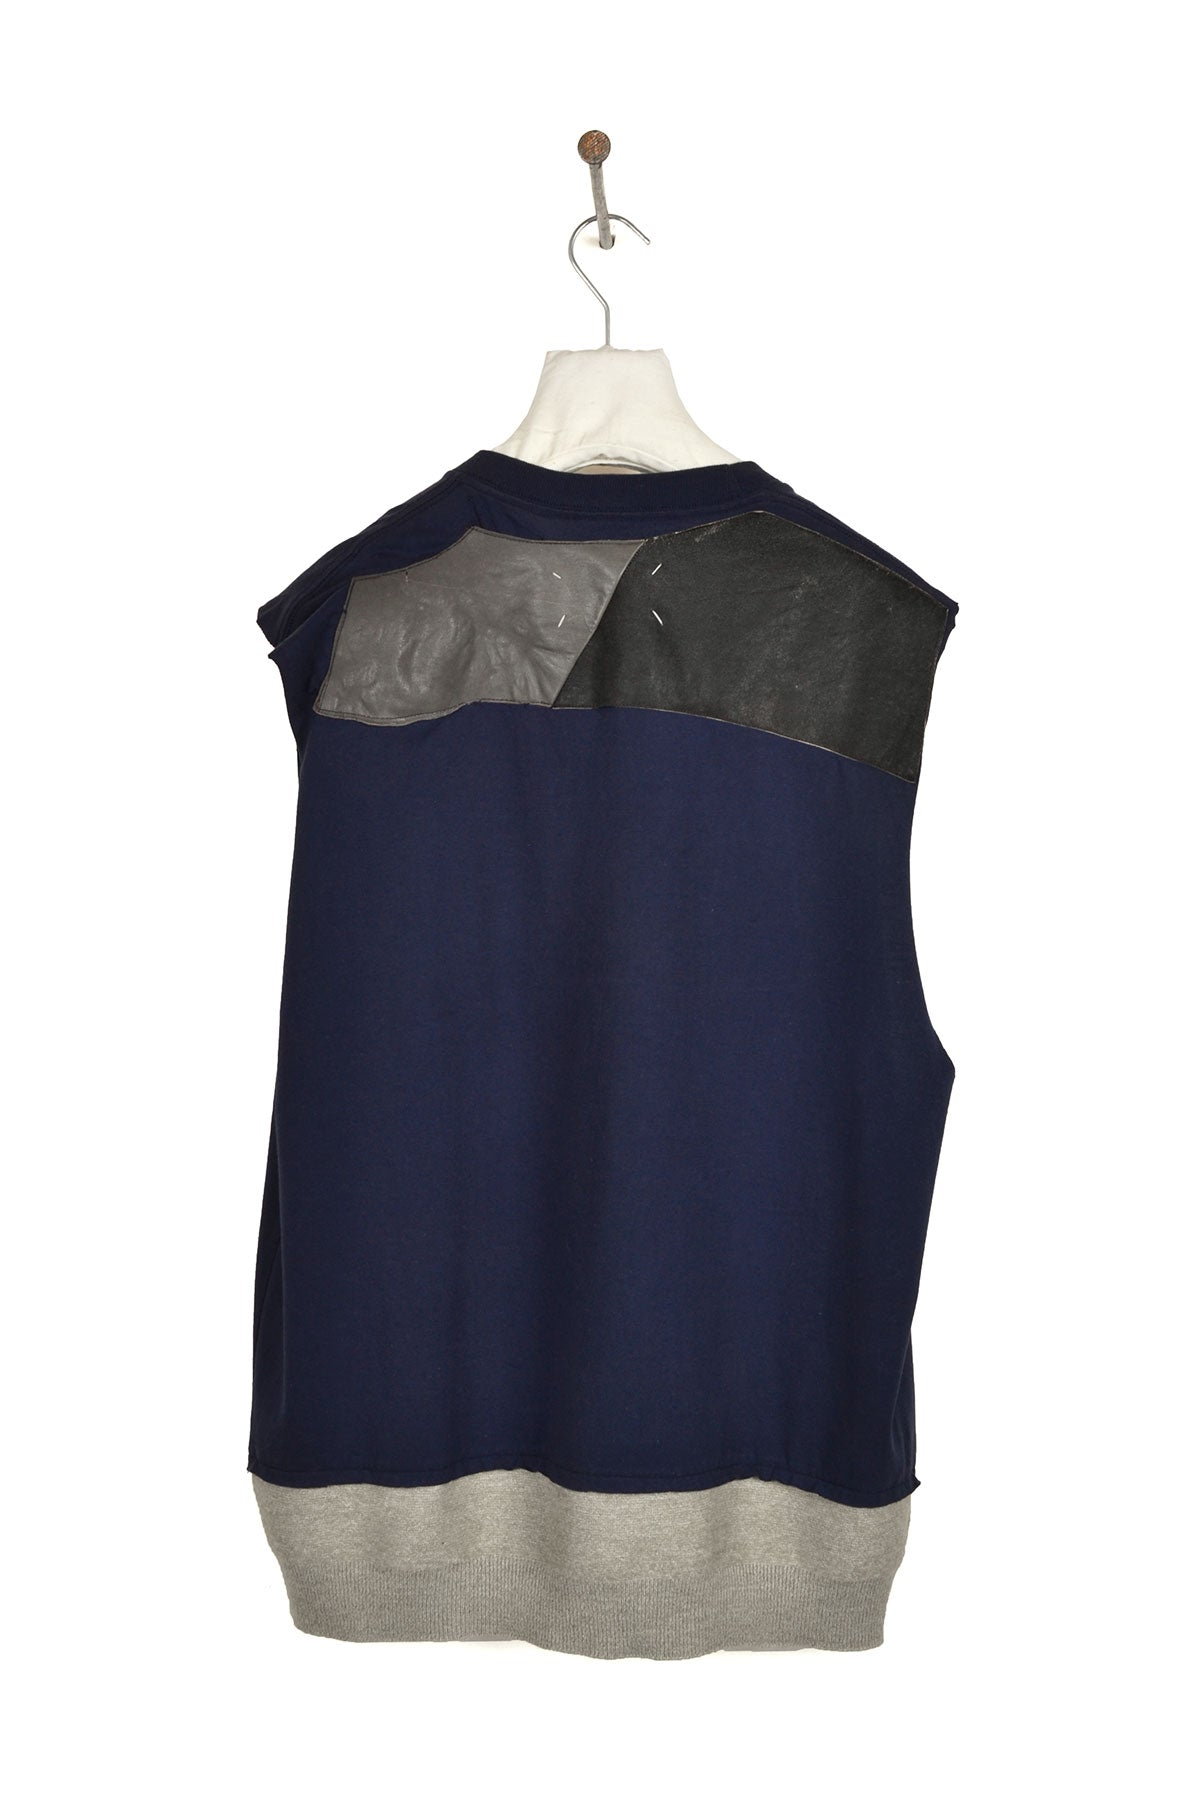 2004 S/S ARTISANAL RE-ASSEMBLED SLEEVELESS TOP WITH LEATHER PATCHES